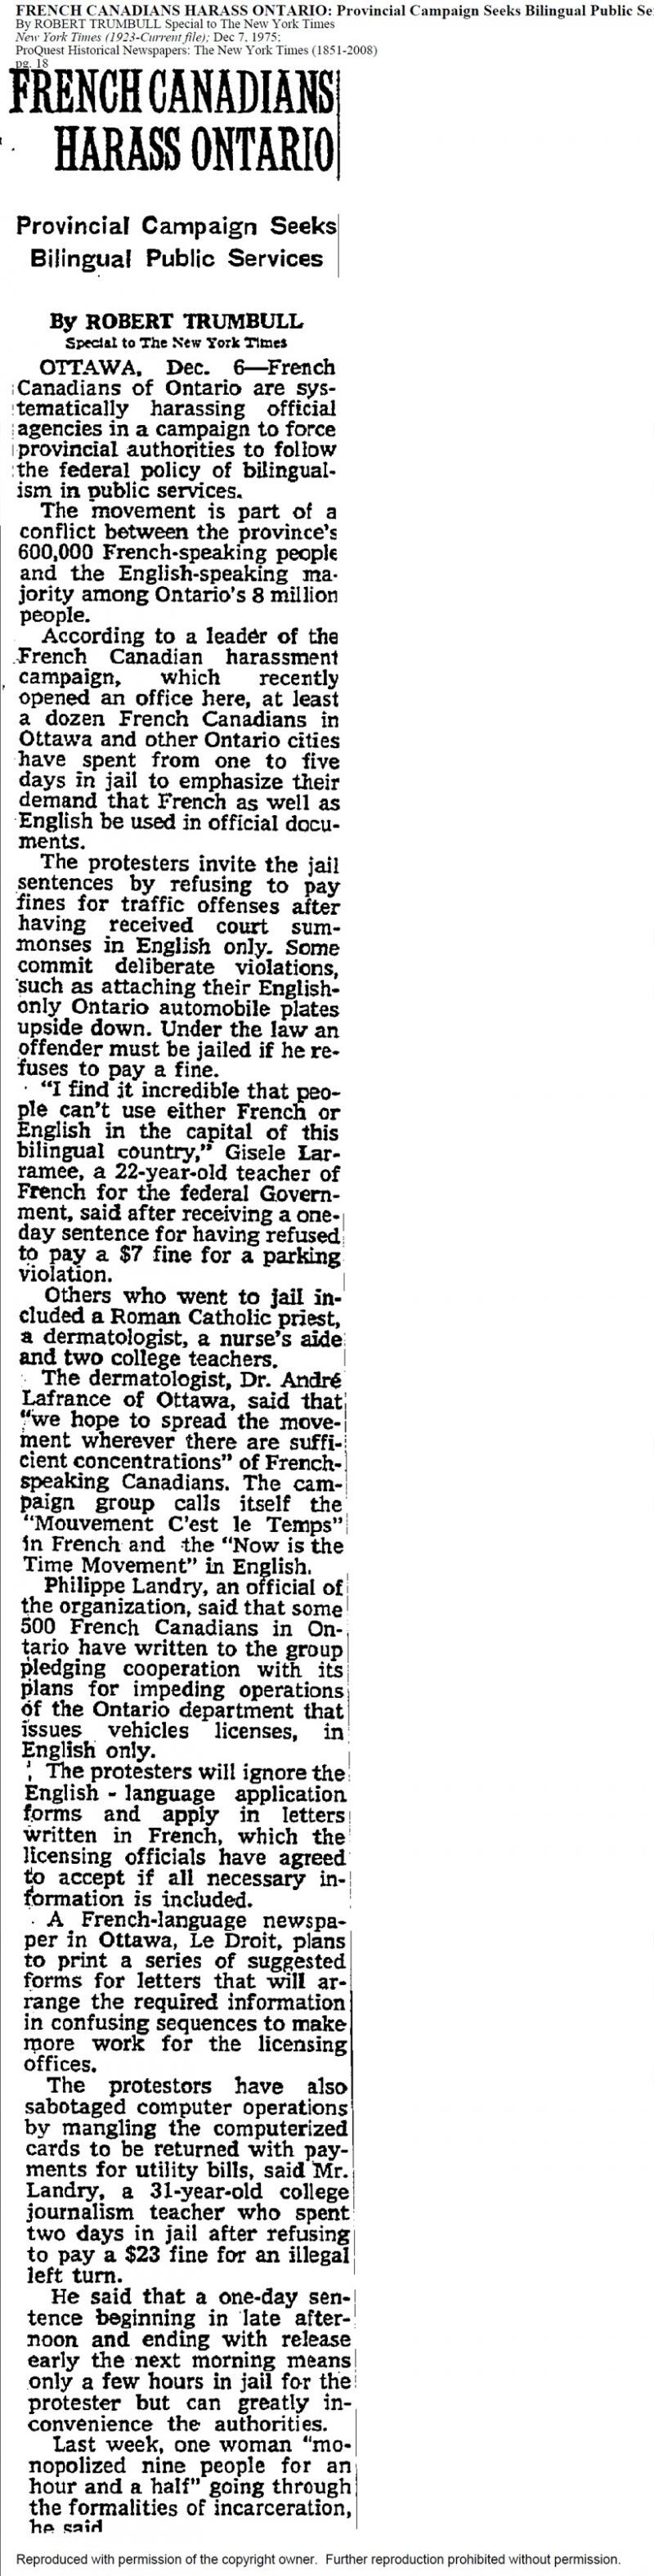 Newspaper article written in English, arranged in a long single column. The title appears in uppercase and bold. The article is signed and dated. Typed in small characters above the title of the article, in database style: the title, author name, and source of the article.